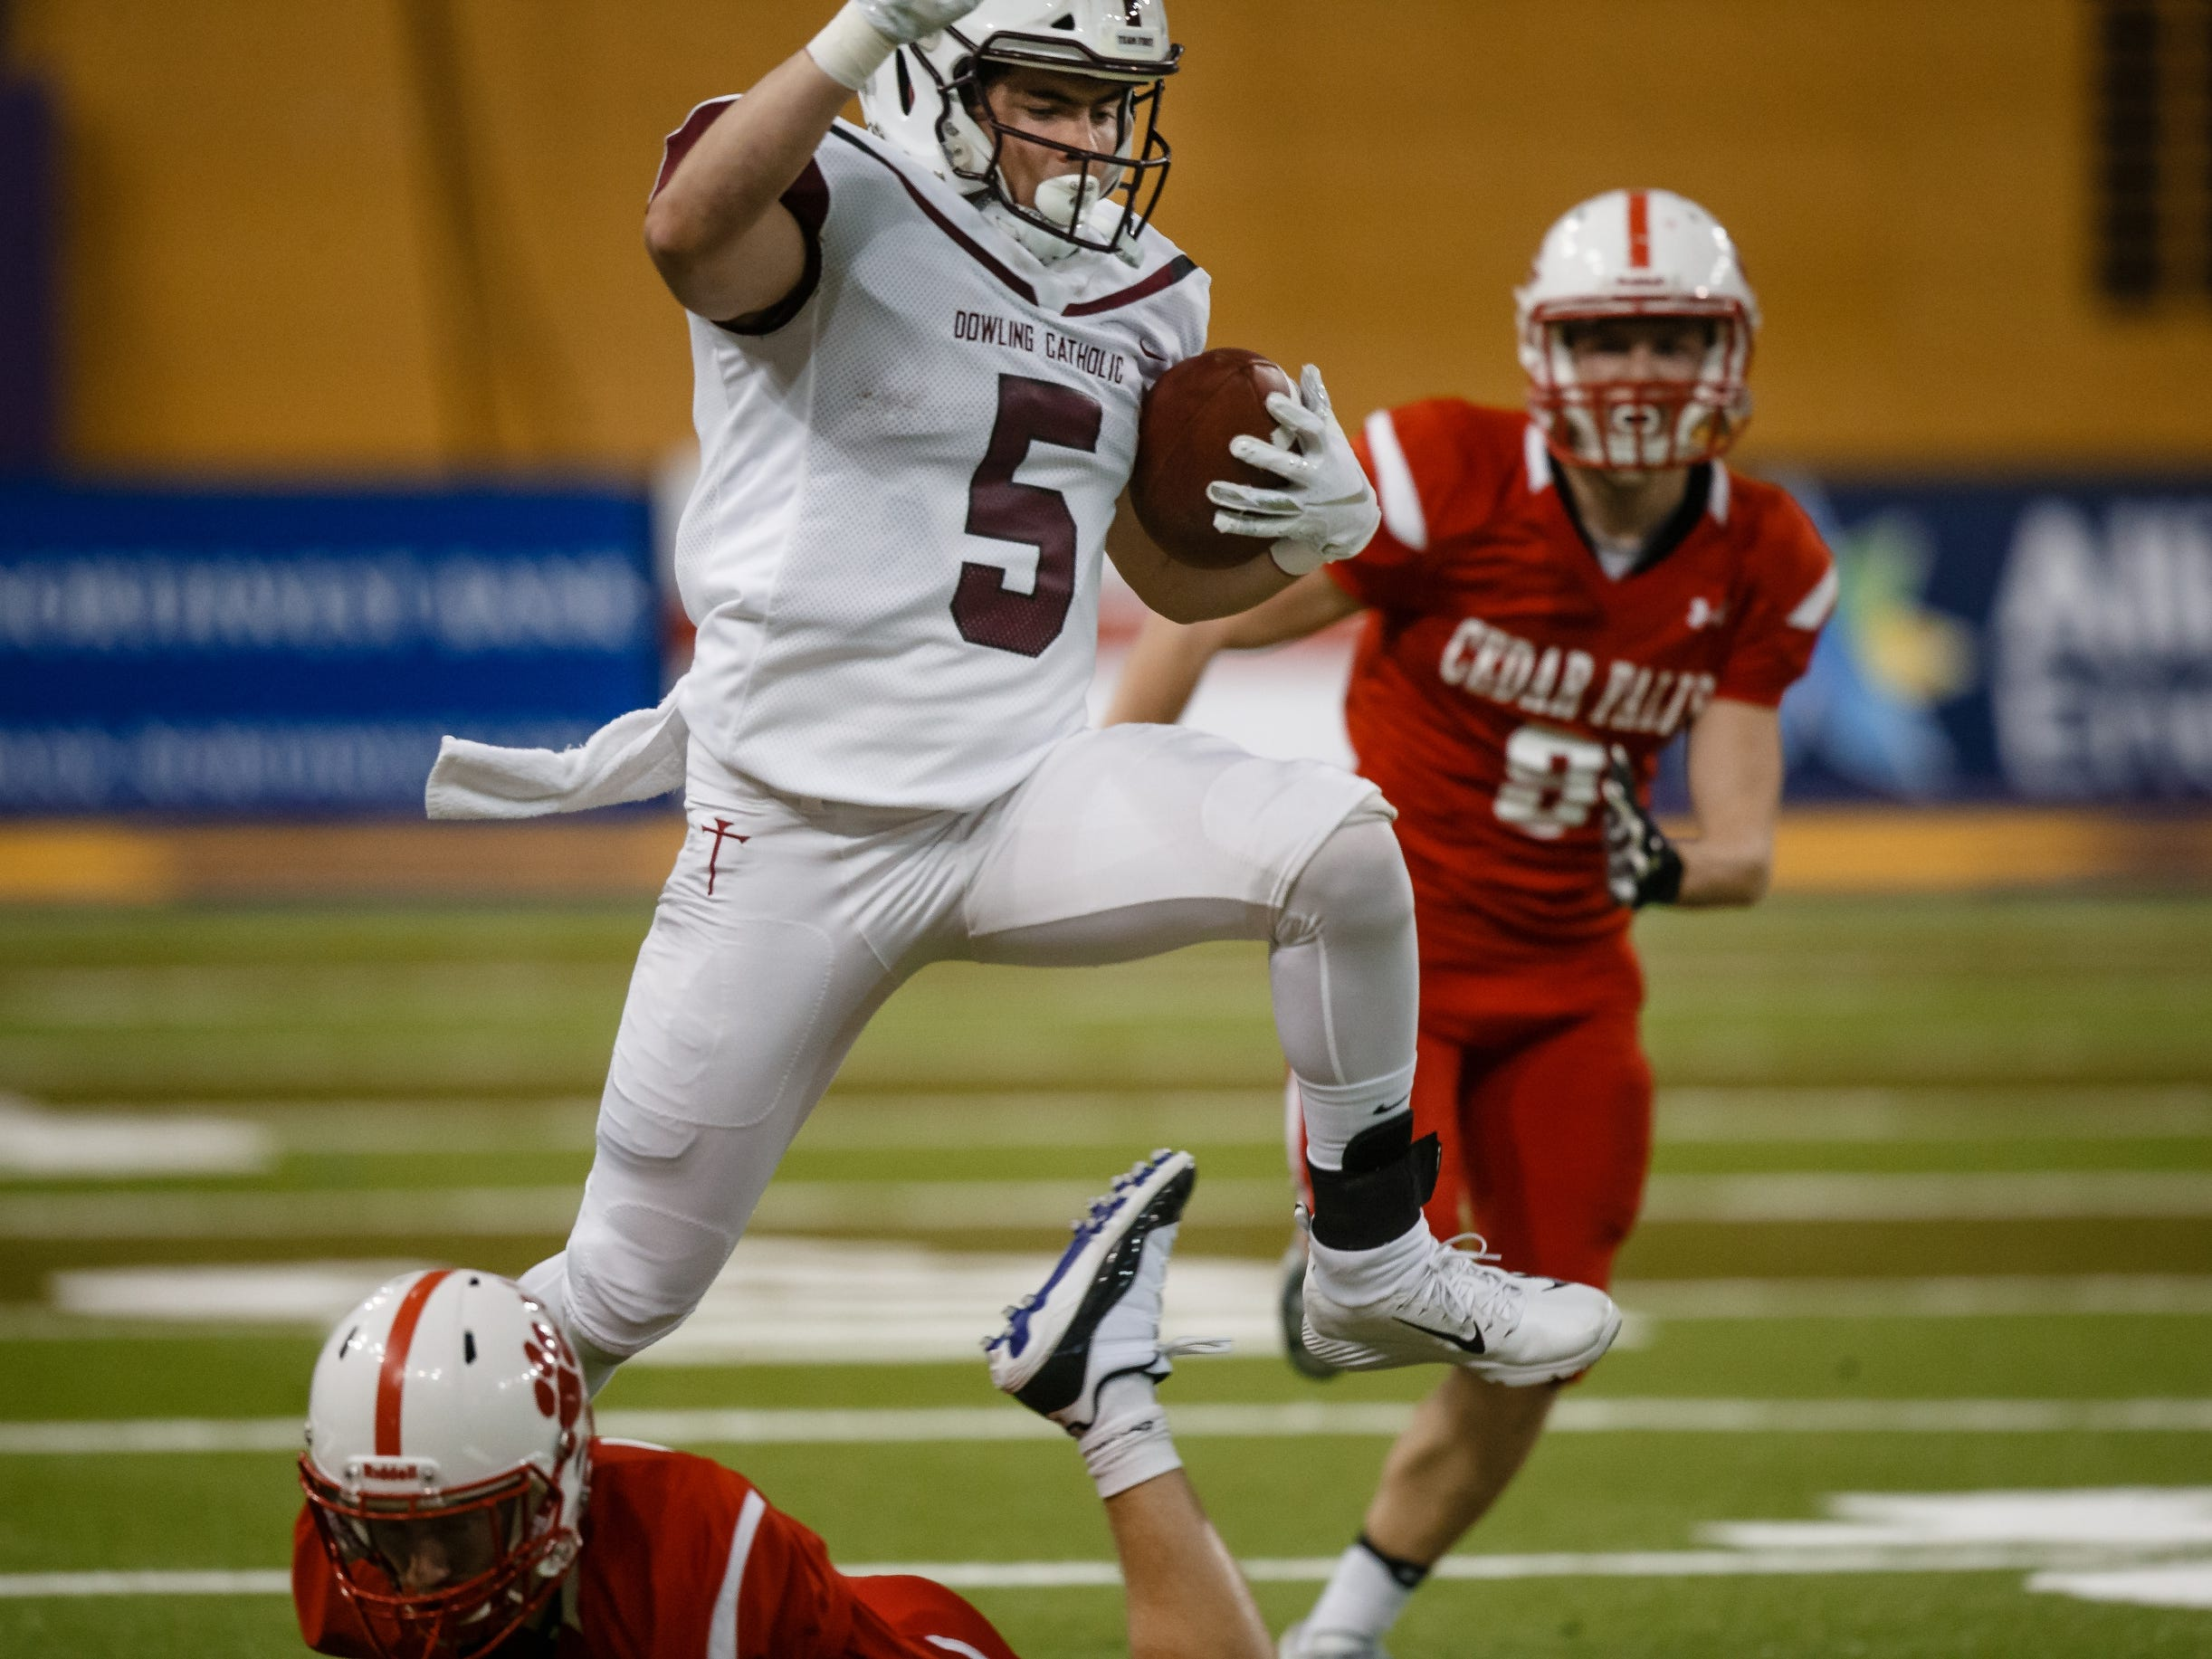 Dowling Catholic's Collin Cook (5) jumps over a defender during their class 4A state championship football game against Cedar Falls on Friday, Nov. 16, 2018, in Cedar Falls. Cedar Falls takes a 13-7 lead into halftime.